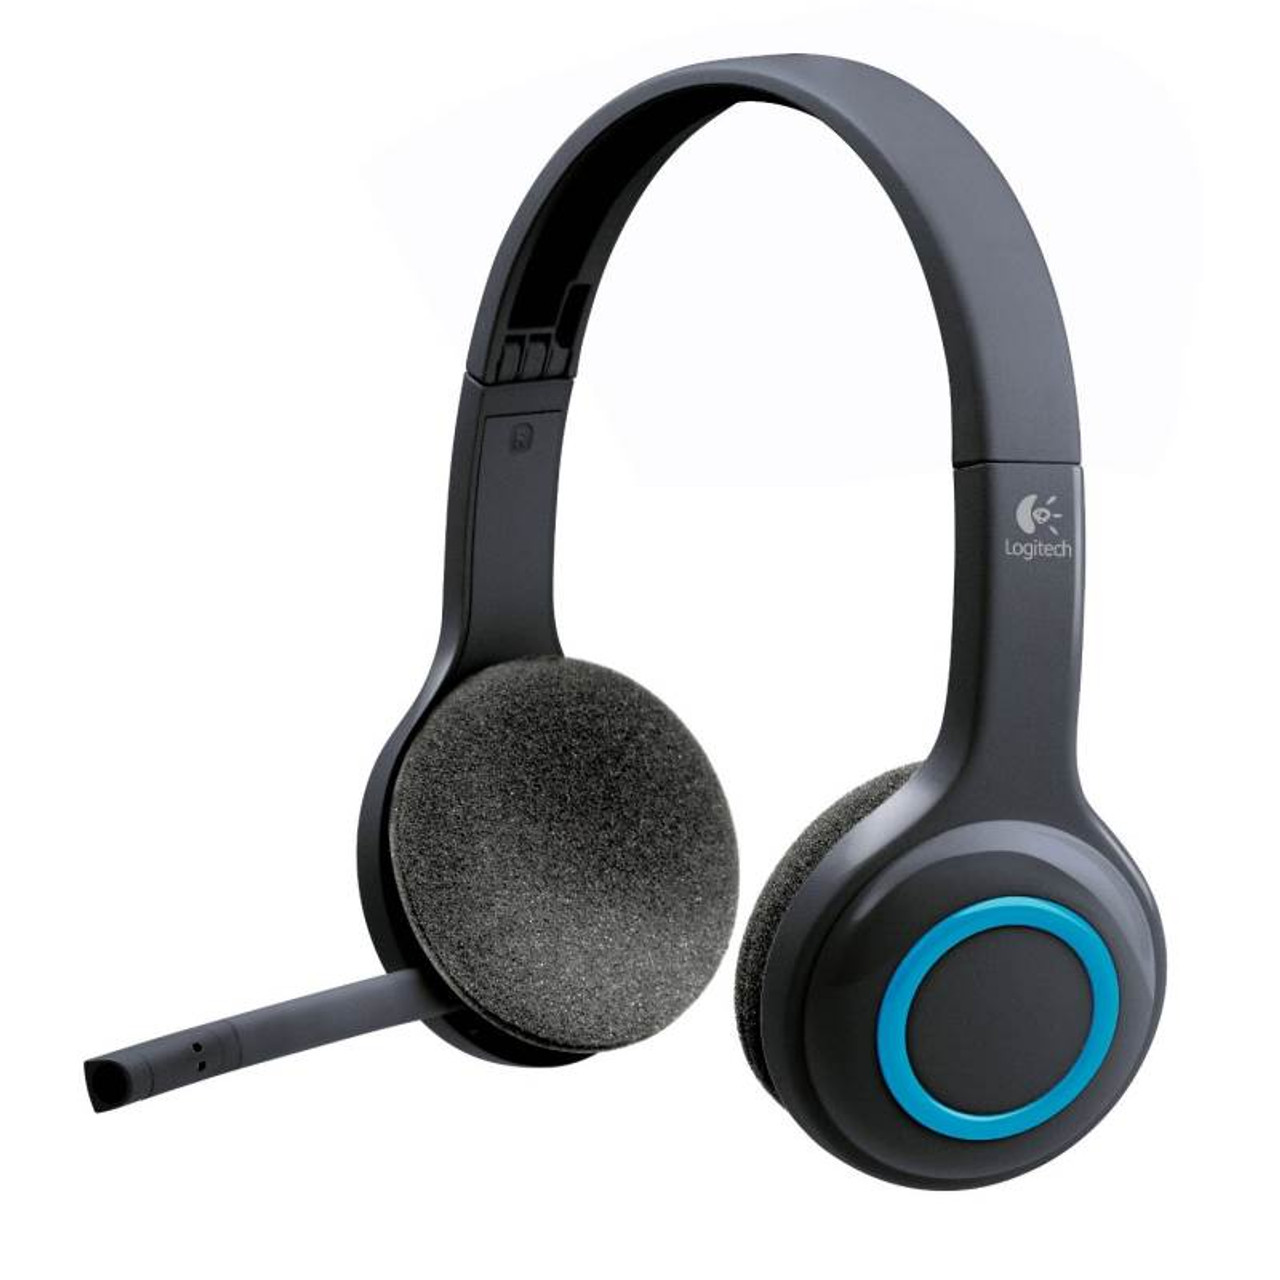 Product image for Logitech Wireless Headset H600 Nano USB Receiver | CX Computer Superstore